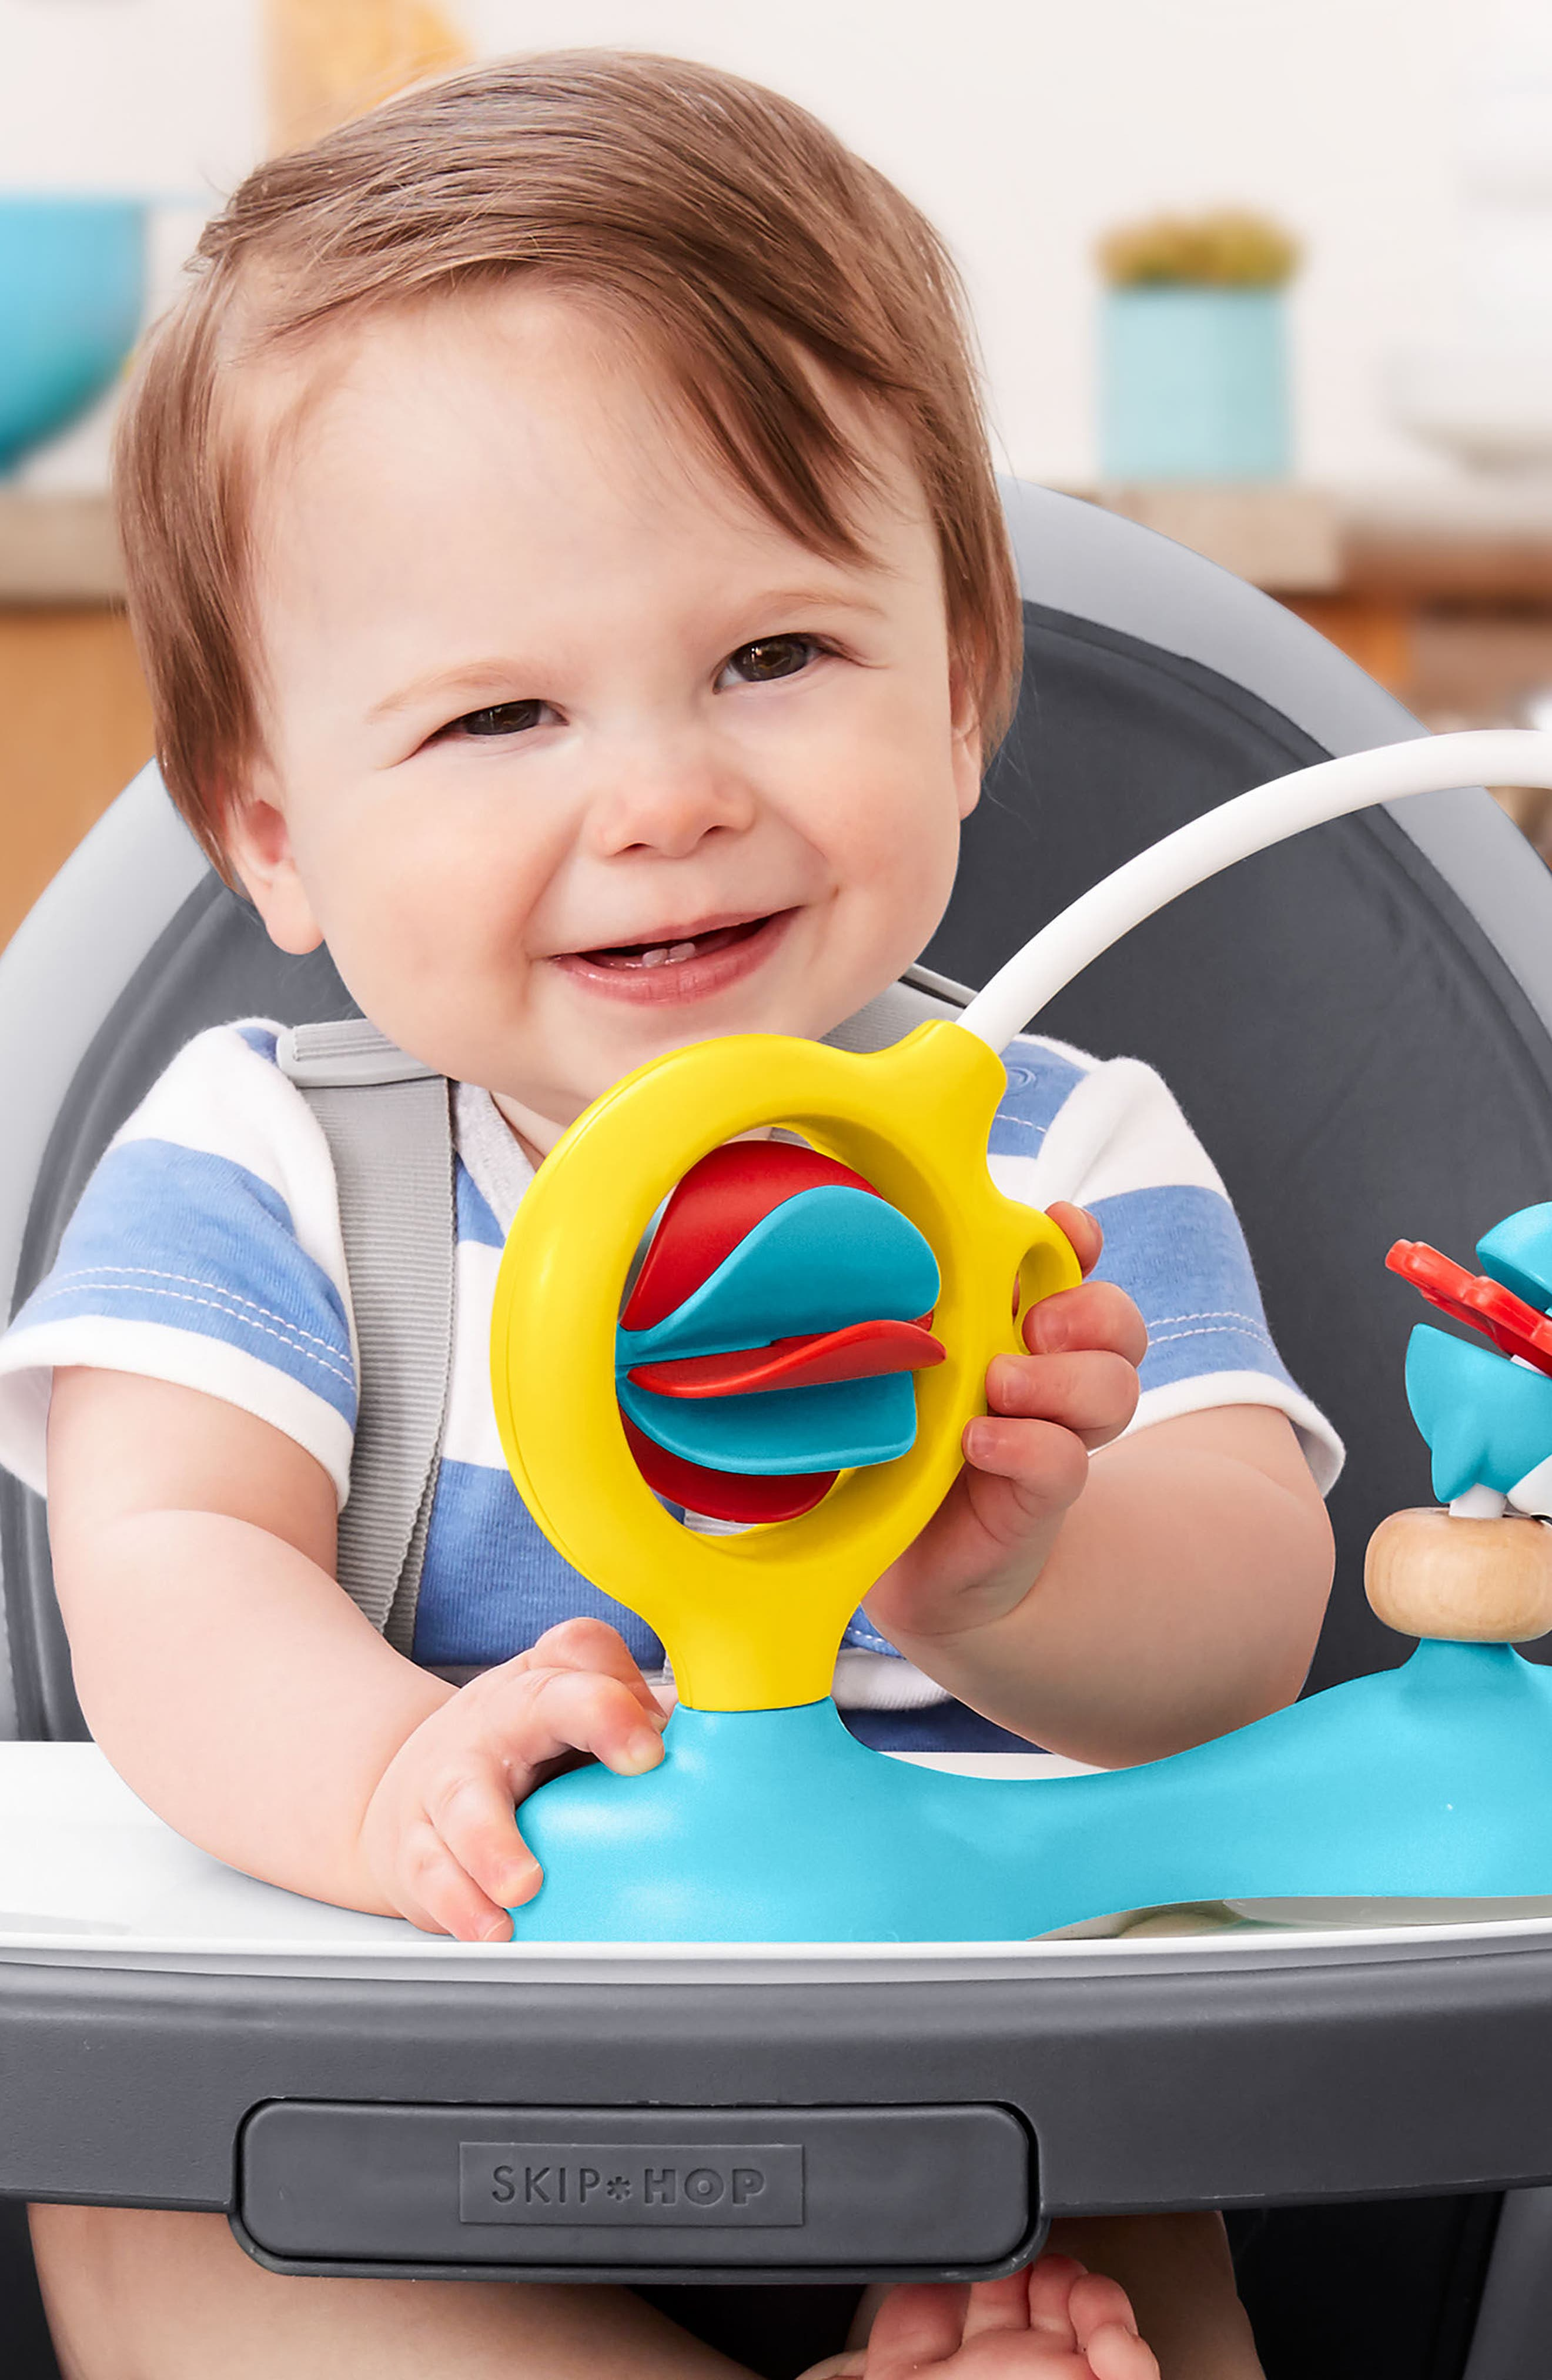 Explore N More Bead Mover Highchair Toy,                             Alternate thumbnail 5, color,                             400